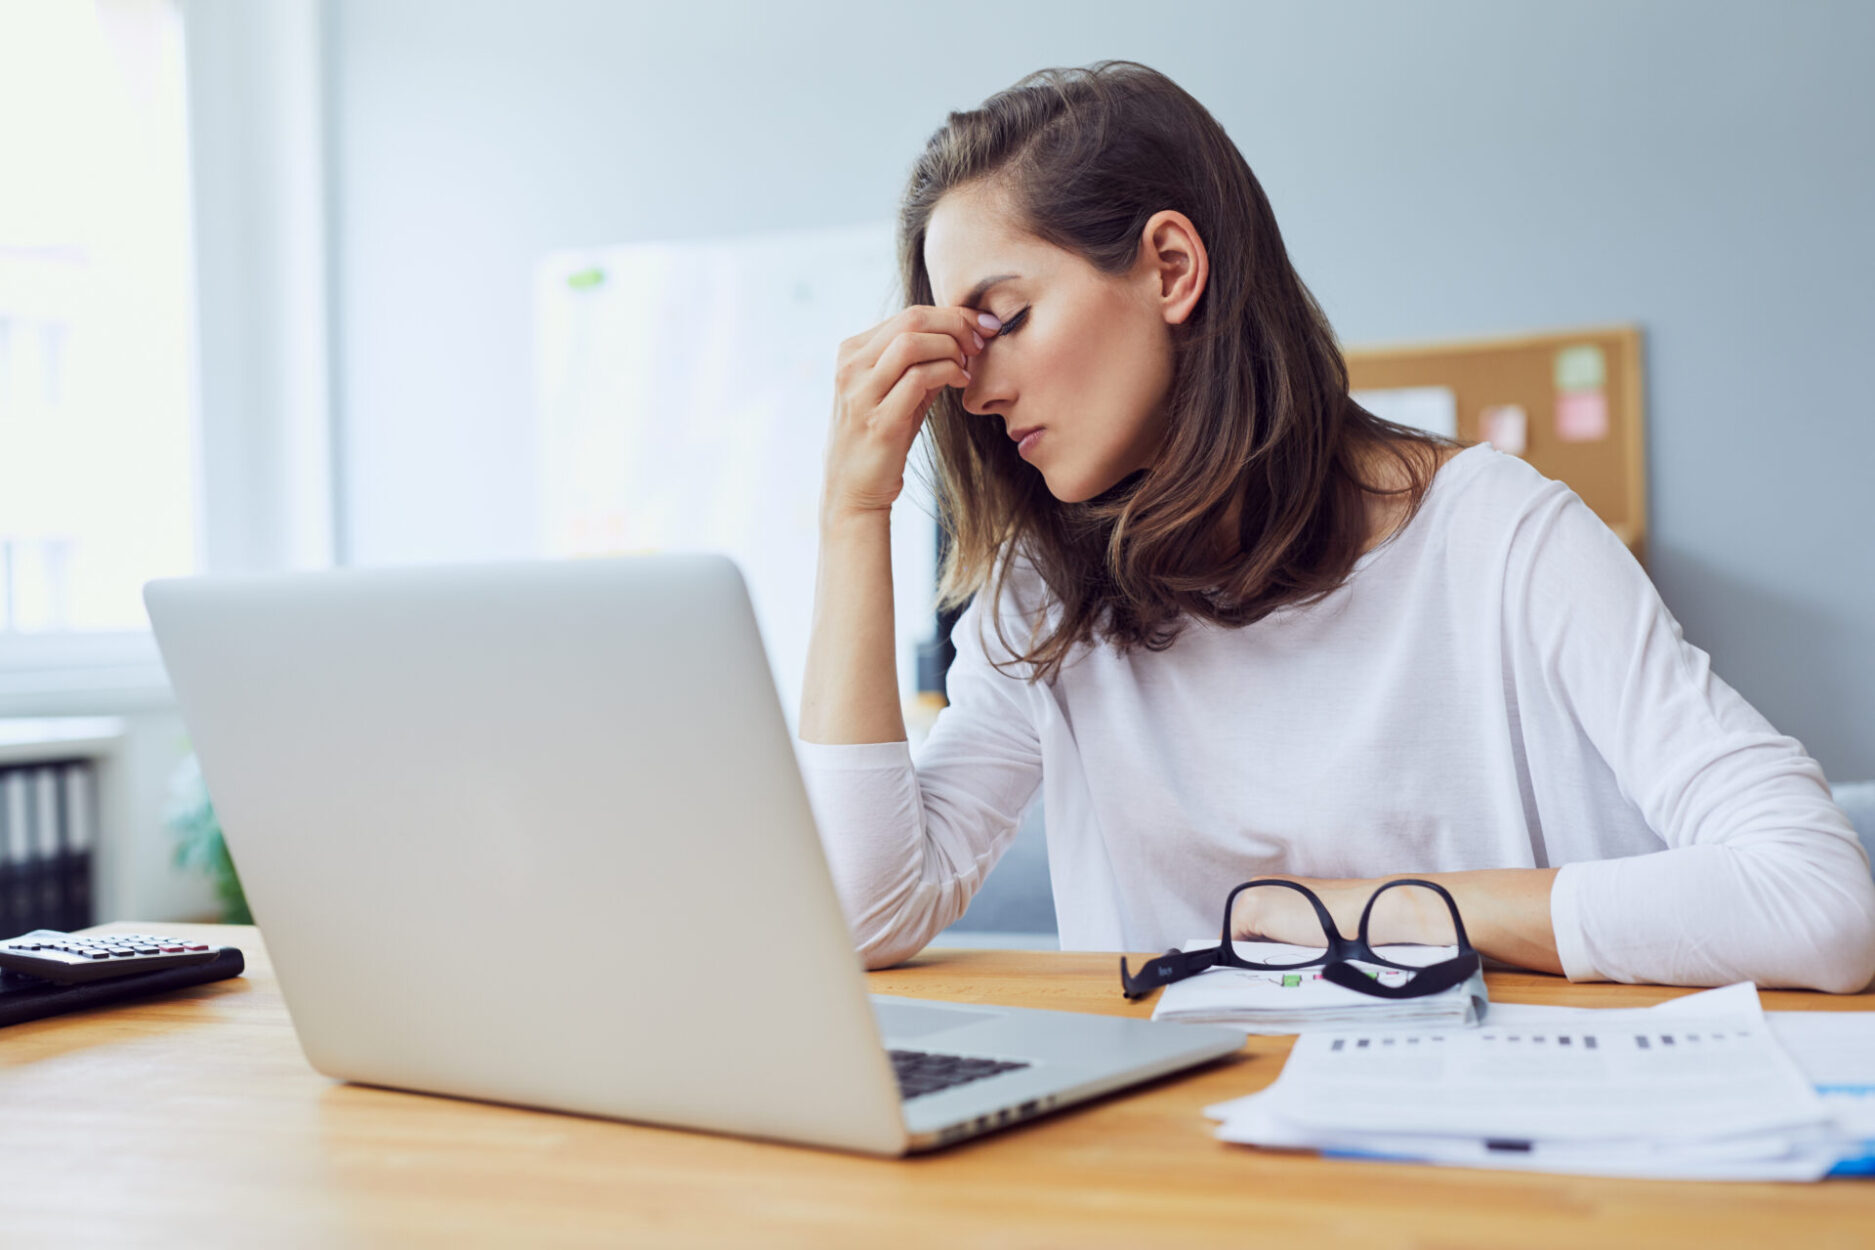 woman sitting at desk in front of laptop with eyes closed